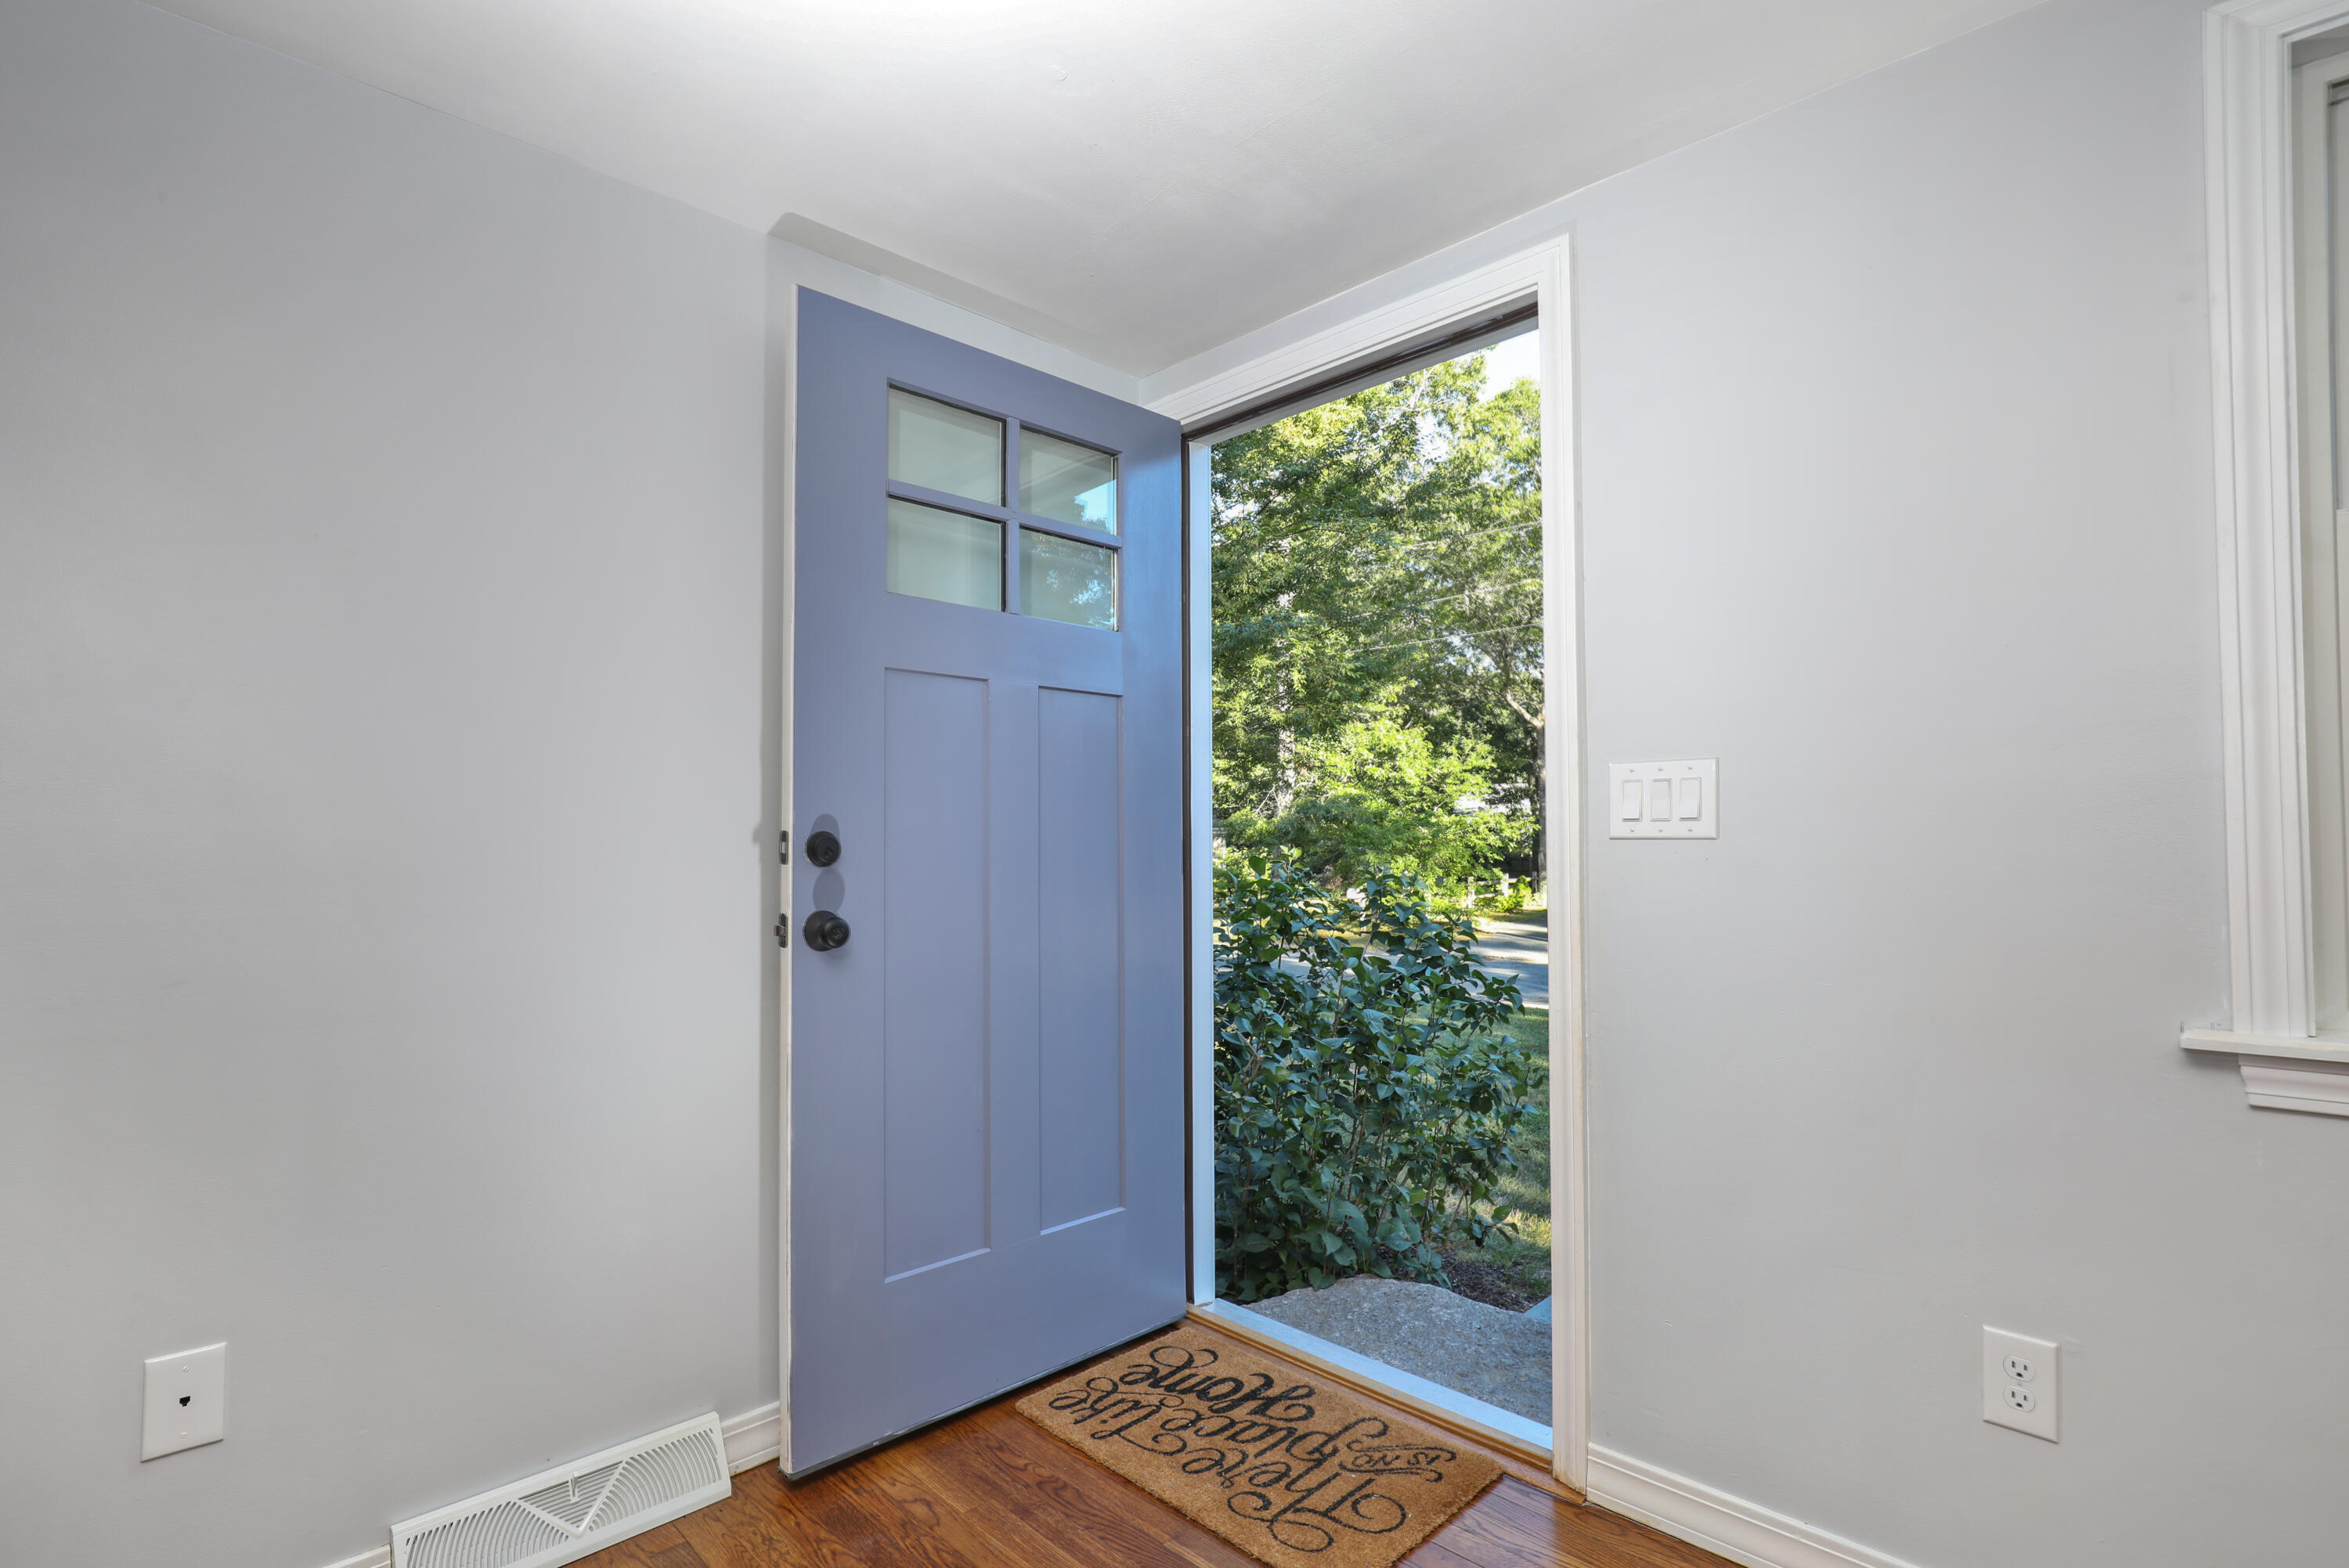 9 Grouse Lane, Hyannis, MA photo 3